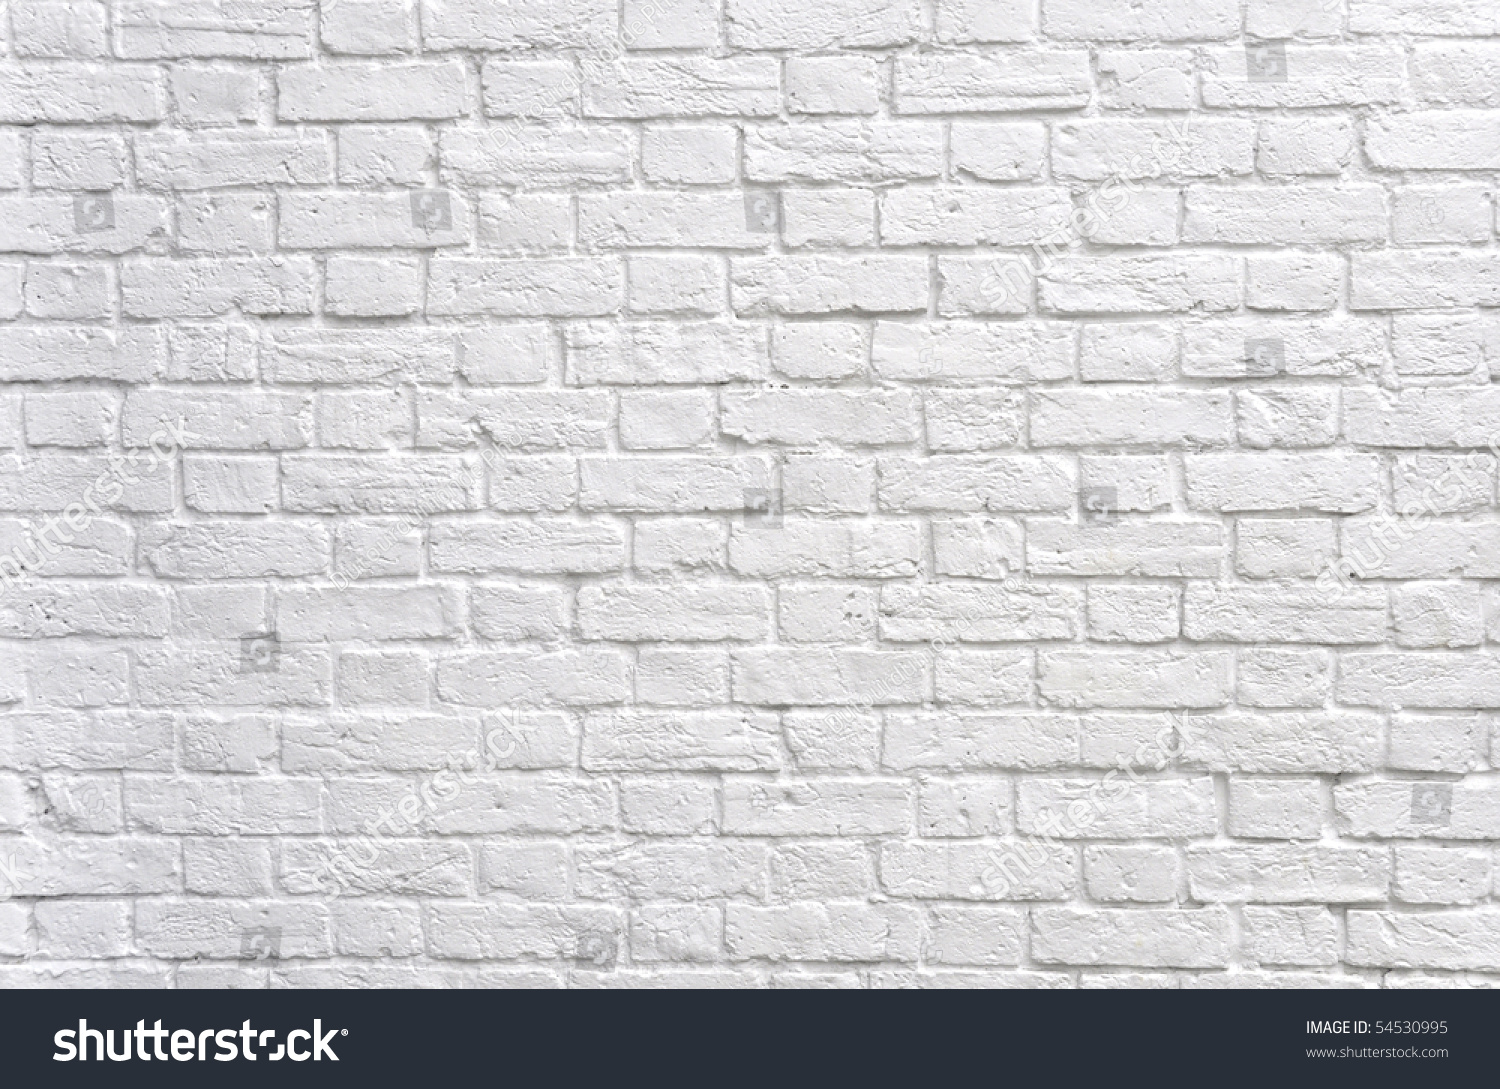 White brick wall stock photo 54530995 shutterstock for White brick wall